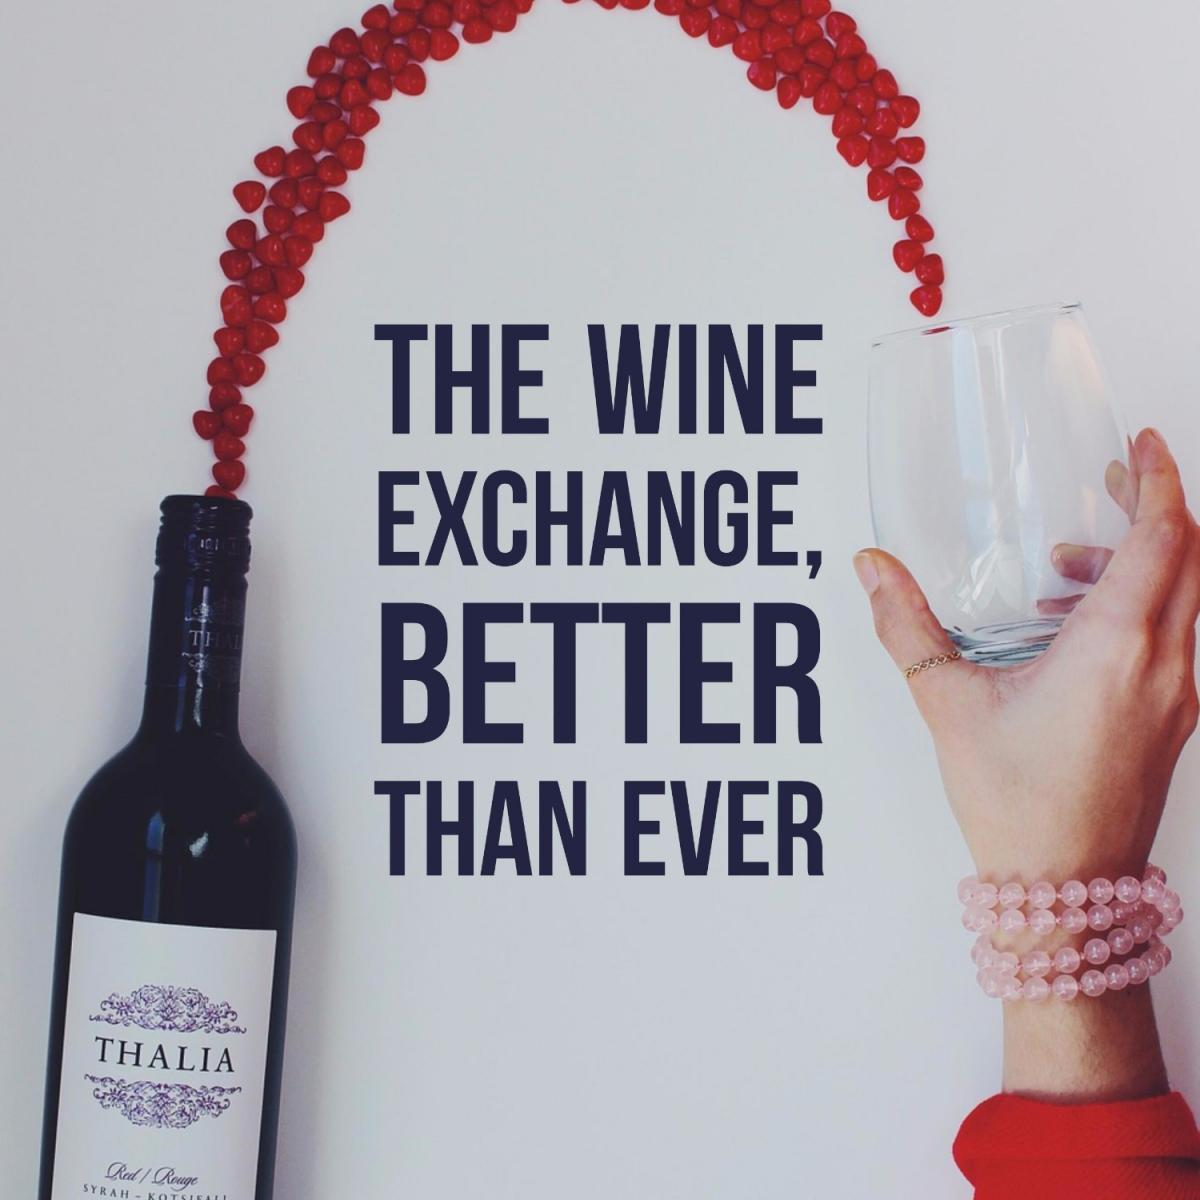 813 Spotlight | The Wine Exchange is Better Than Ever